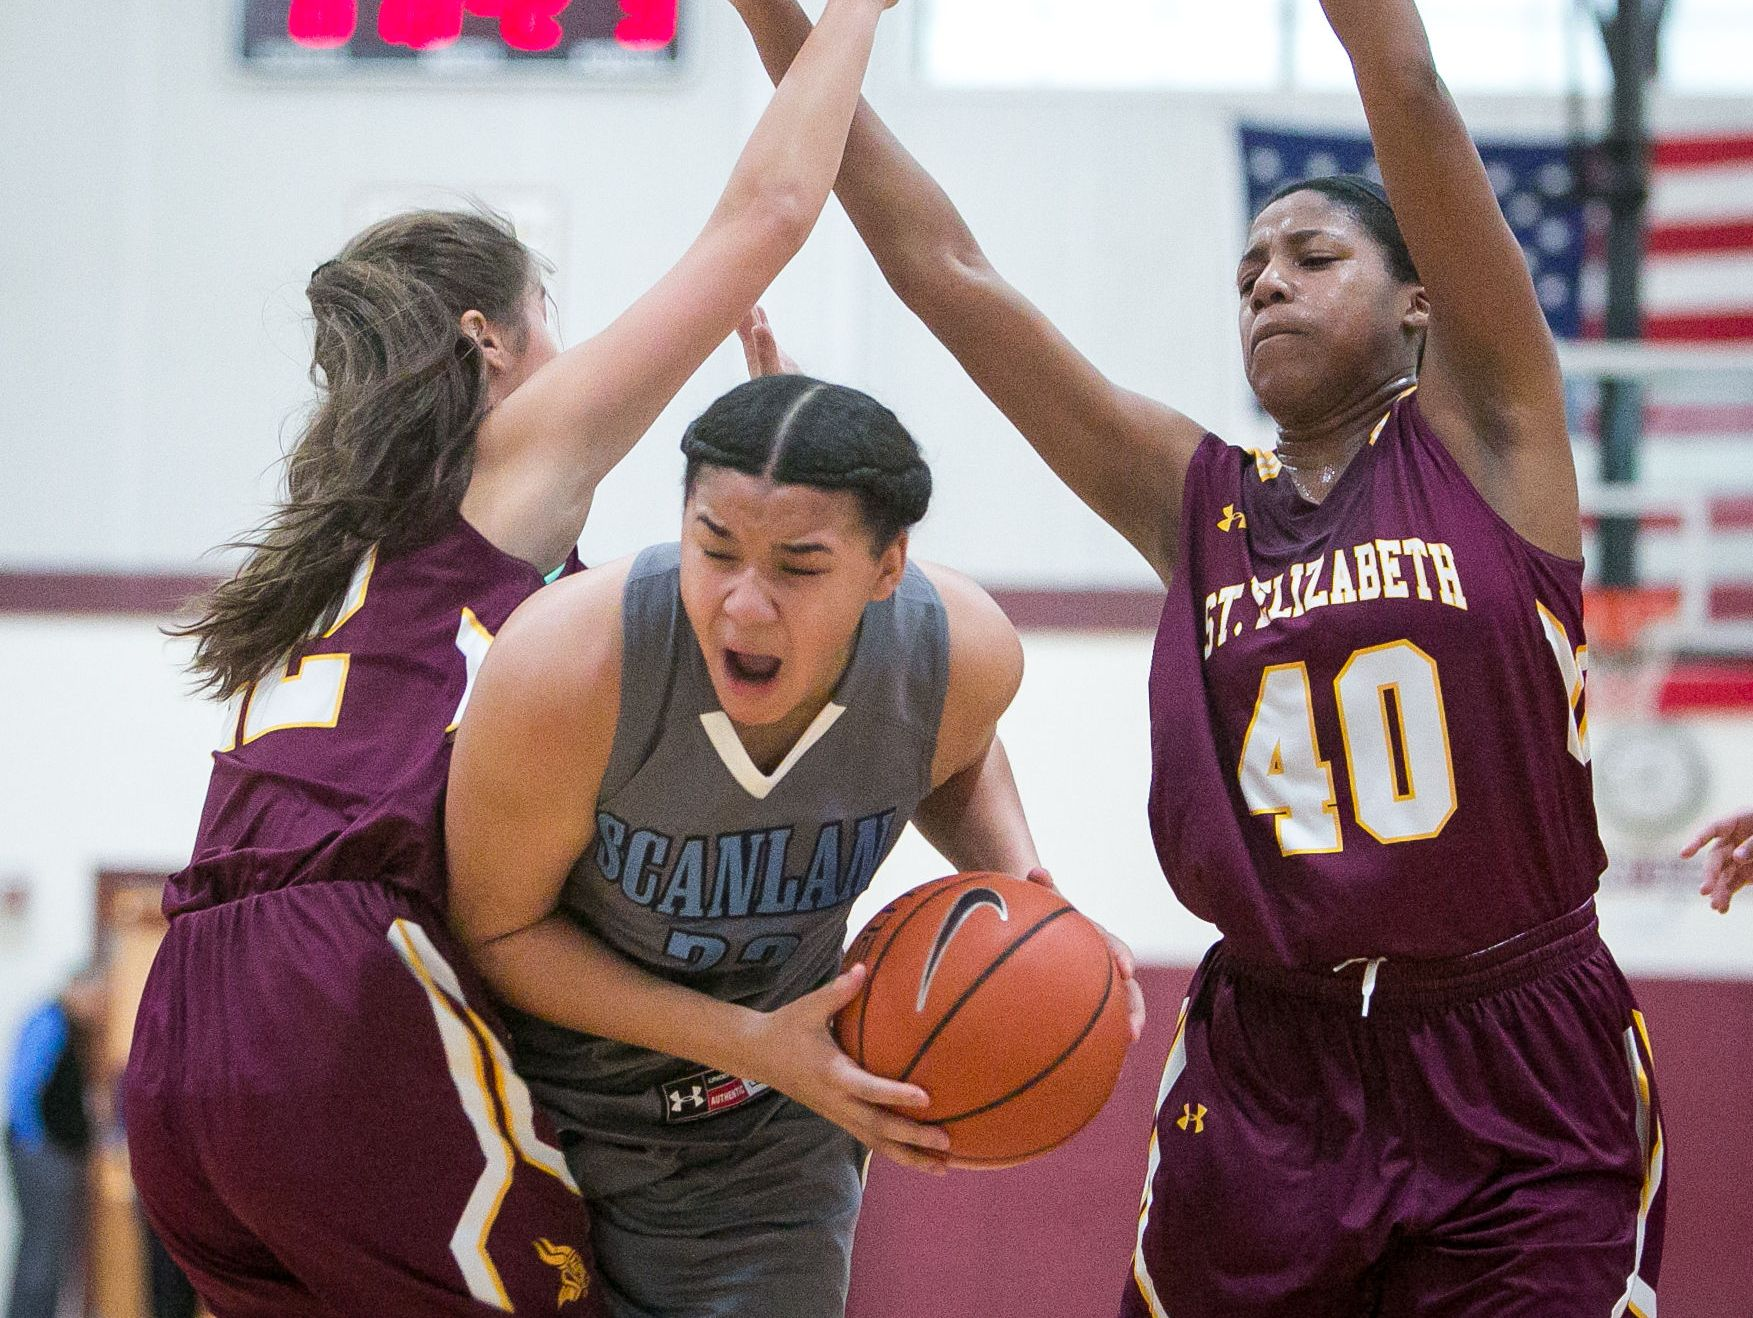 St. Elizabeth senior, Lexi Bromwell (left), and teammate Alexis Lee pressures Monsignor Scanlan guard, Kateri Poole, who tries to squeeze through the two defenders.